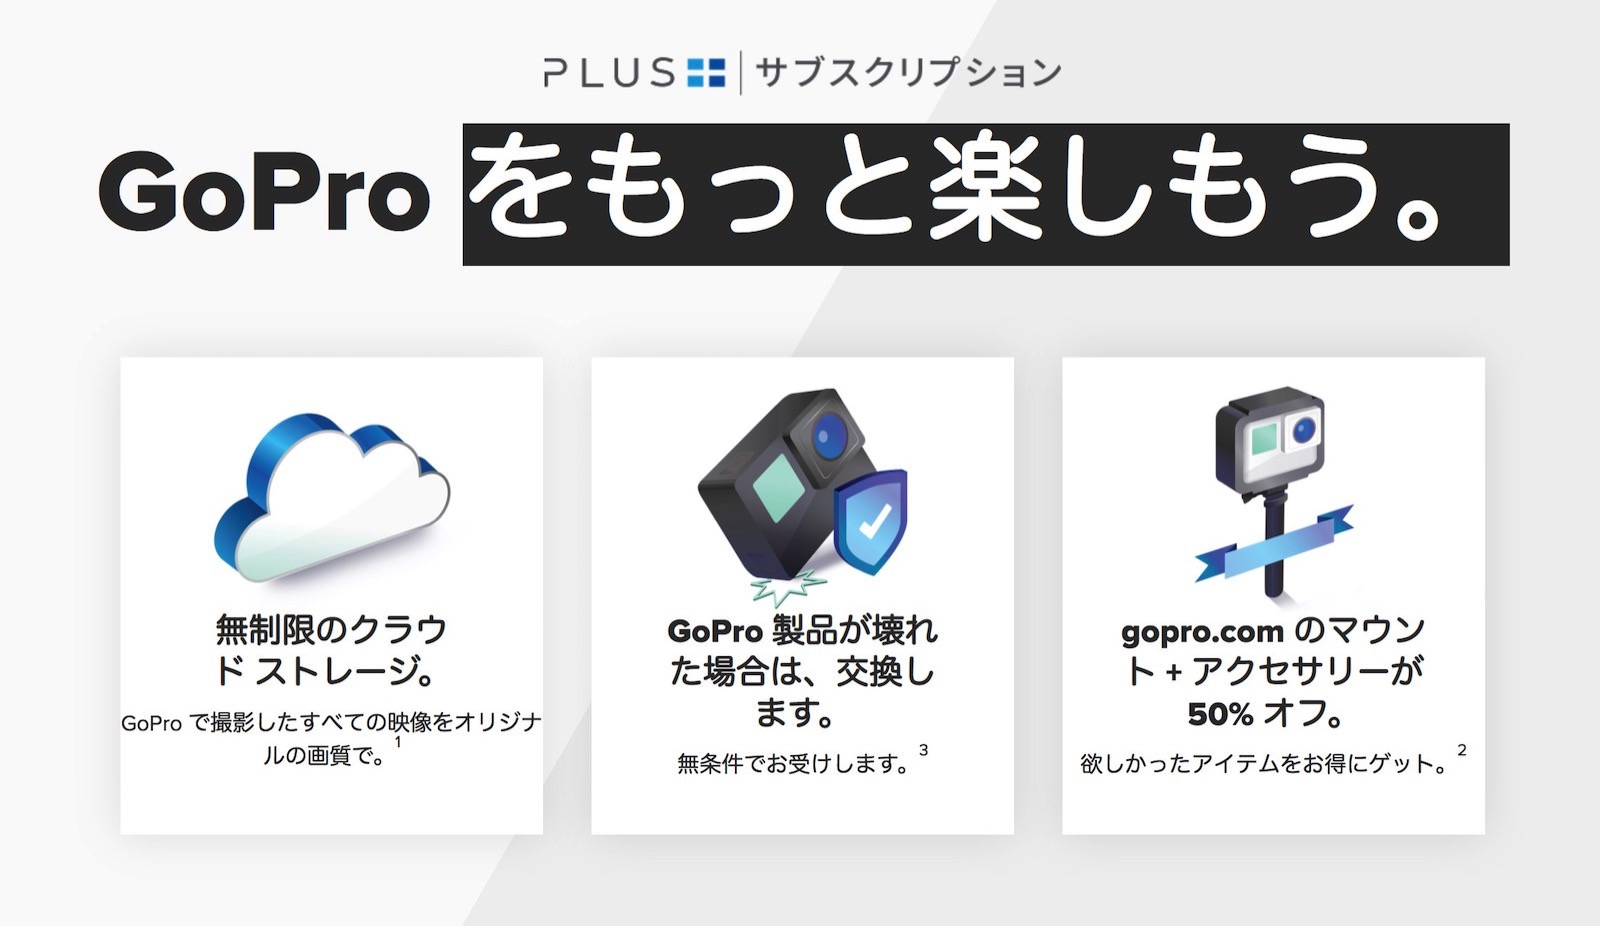 GoPro Plus Subscription